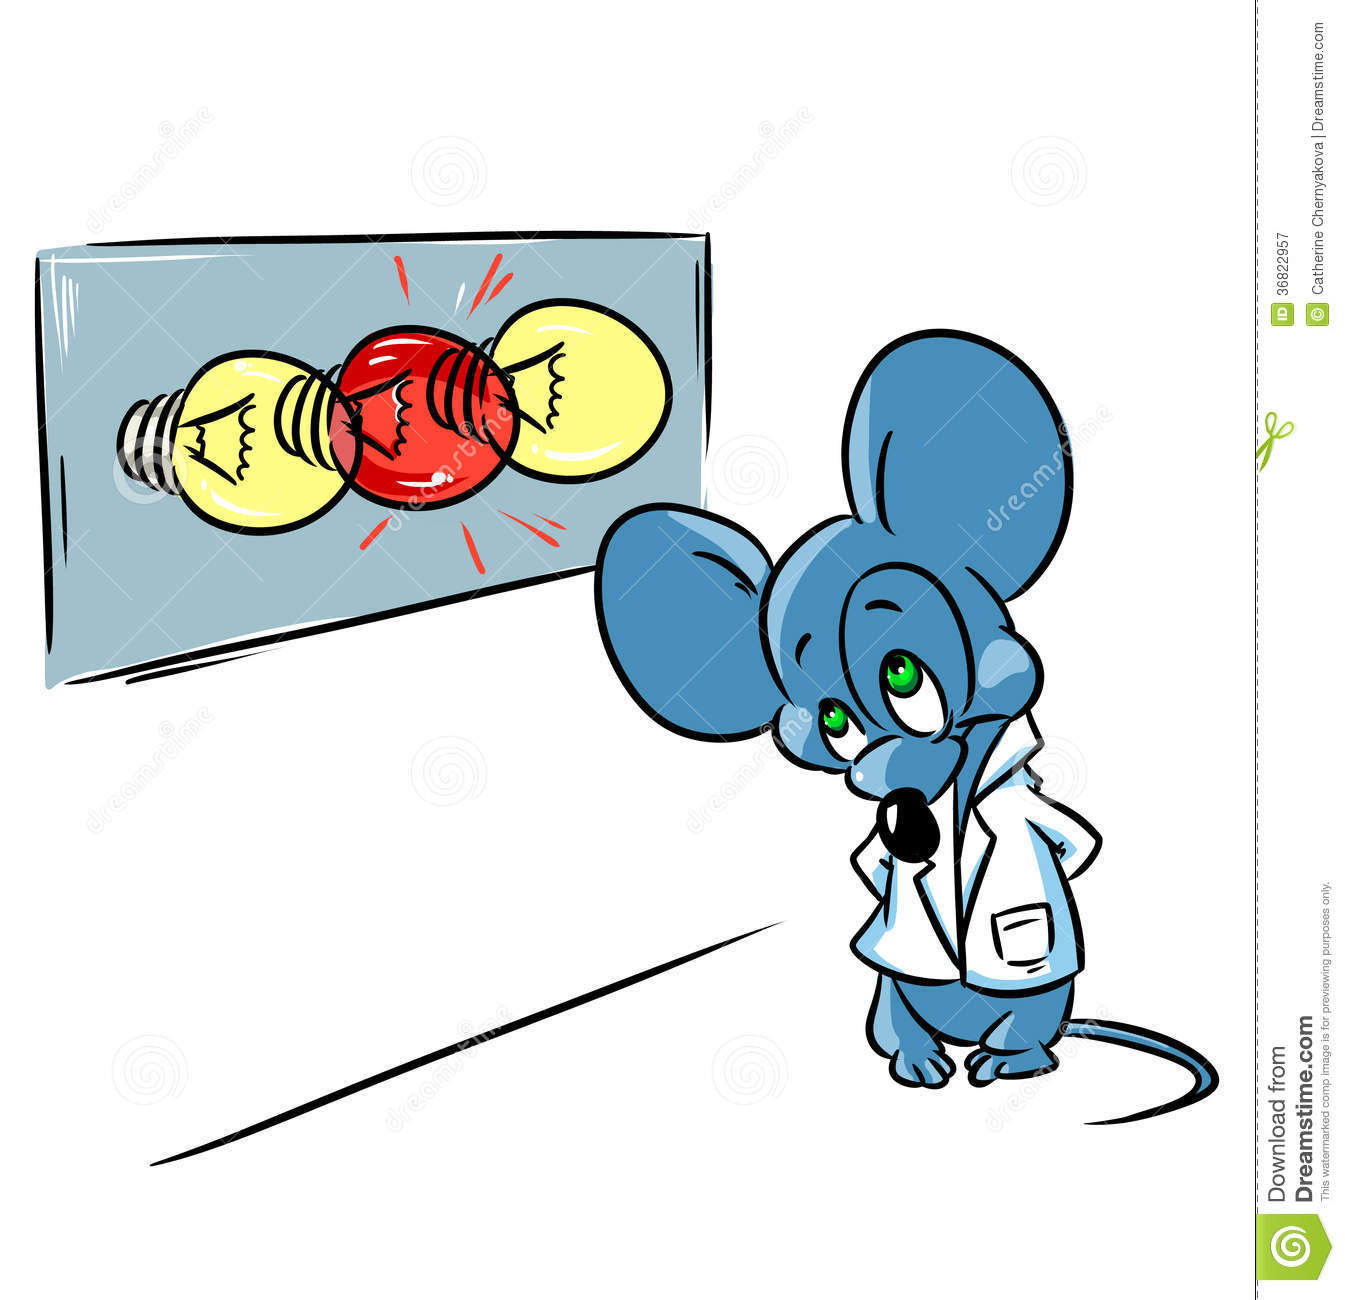 Royalty Free Stock Photography: Laboratory mouse ...